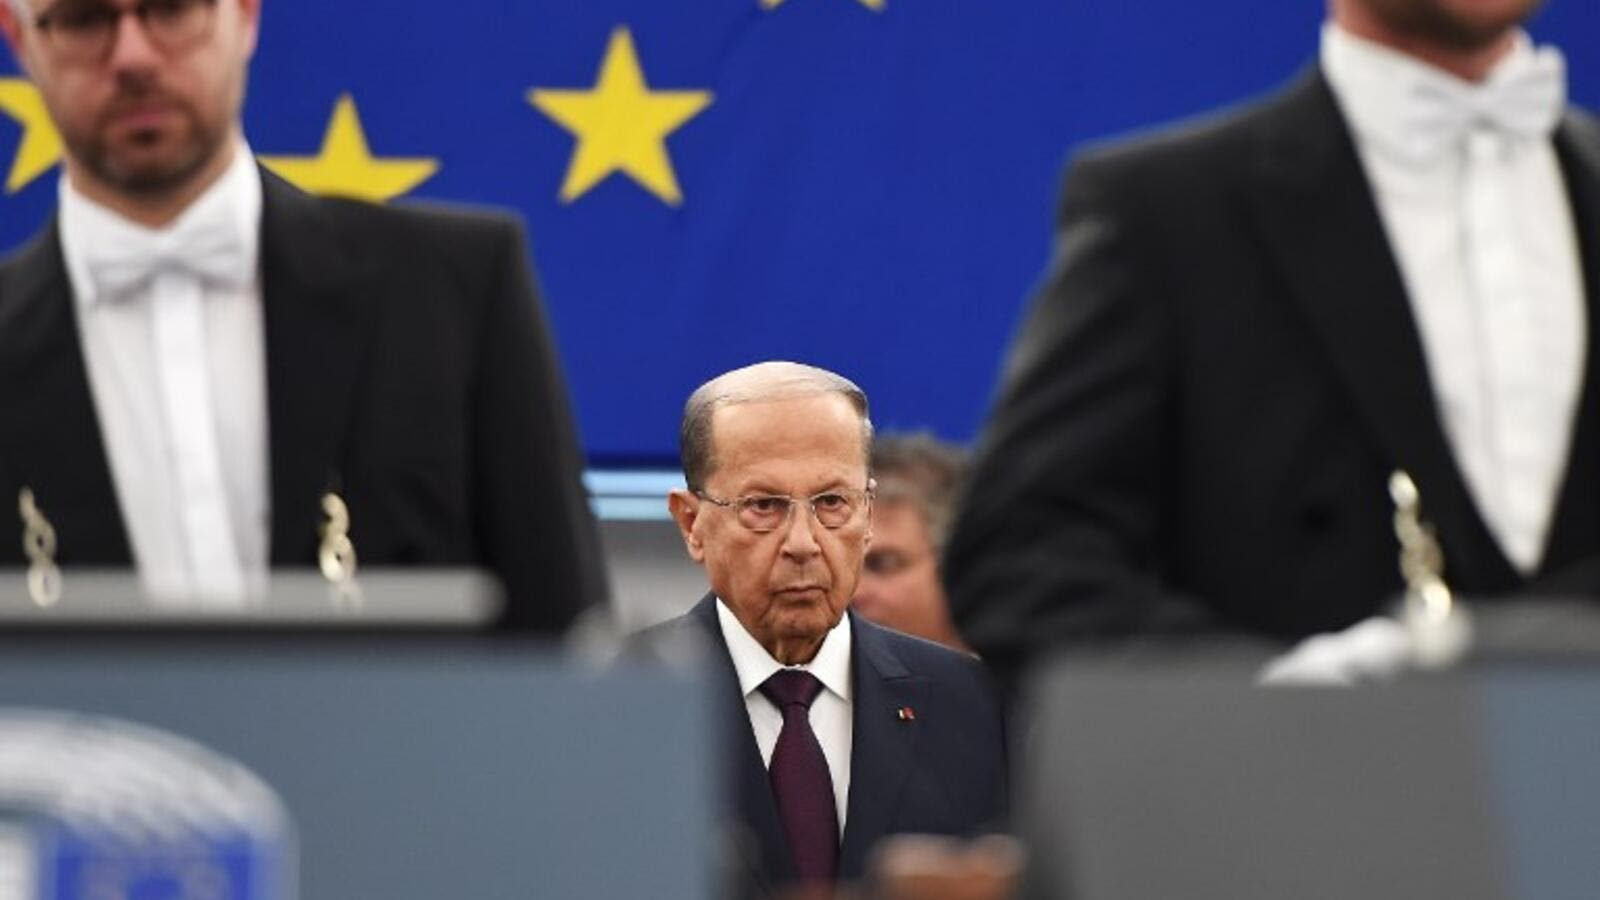 Lebanese President Michel Aoun arrives to deliver a speech during a plenary session at the European Parliament on September 11, 2018 in Strasbourg, eastern France. 